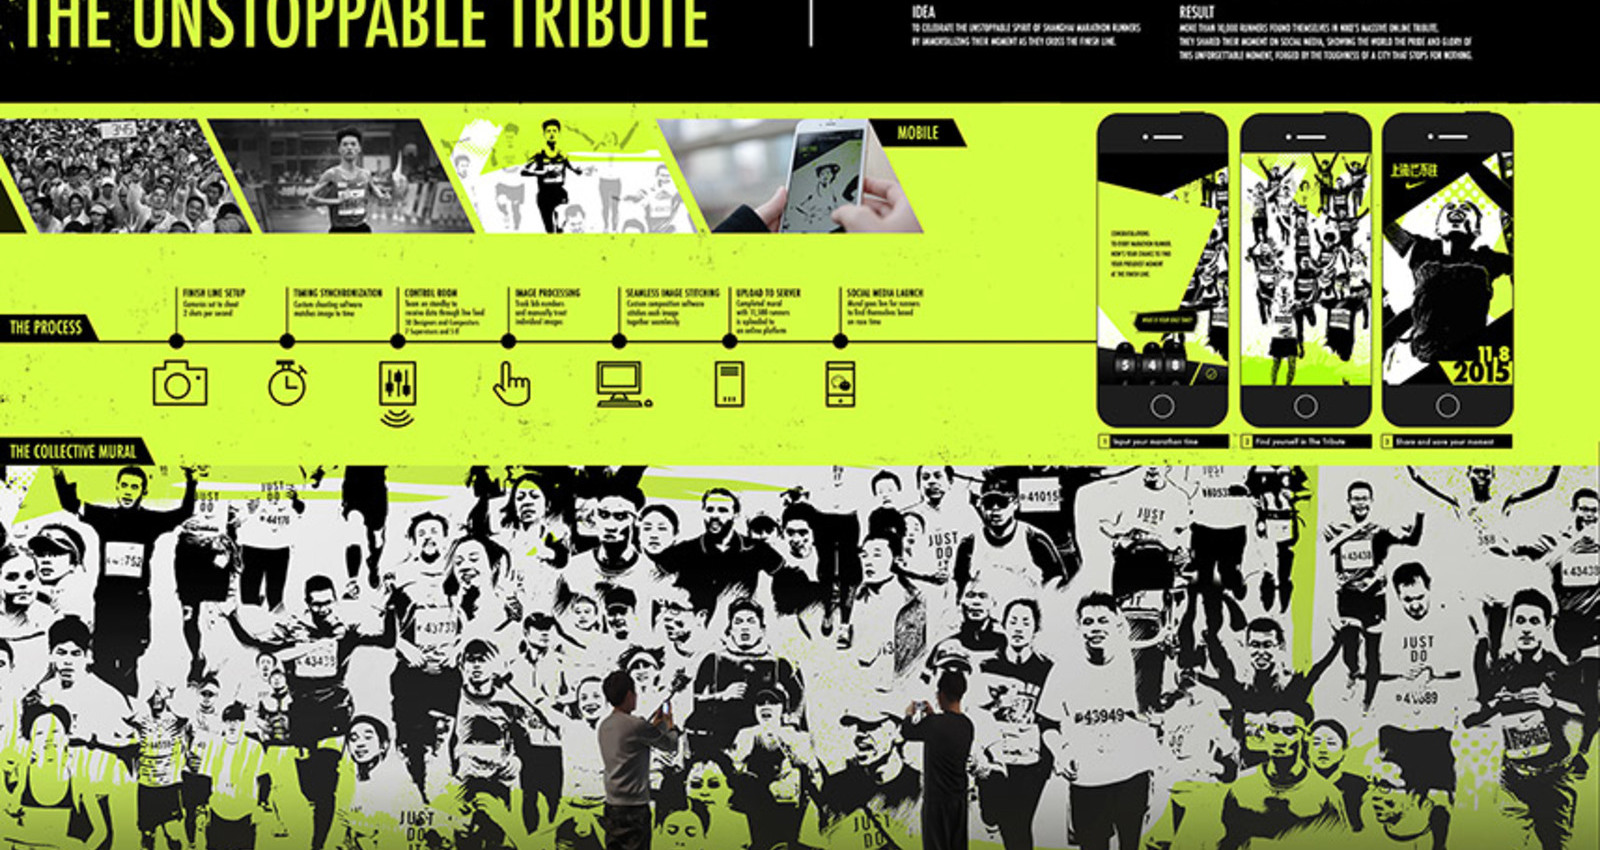 2015 NIKE JDI SHANGHAI CITY ATTACK - The Unstoppable Tribute